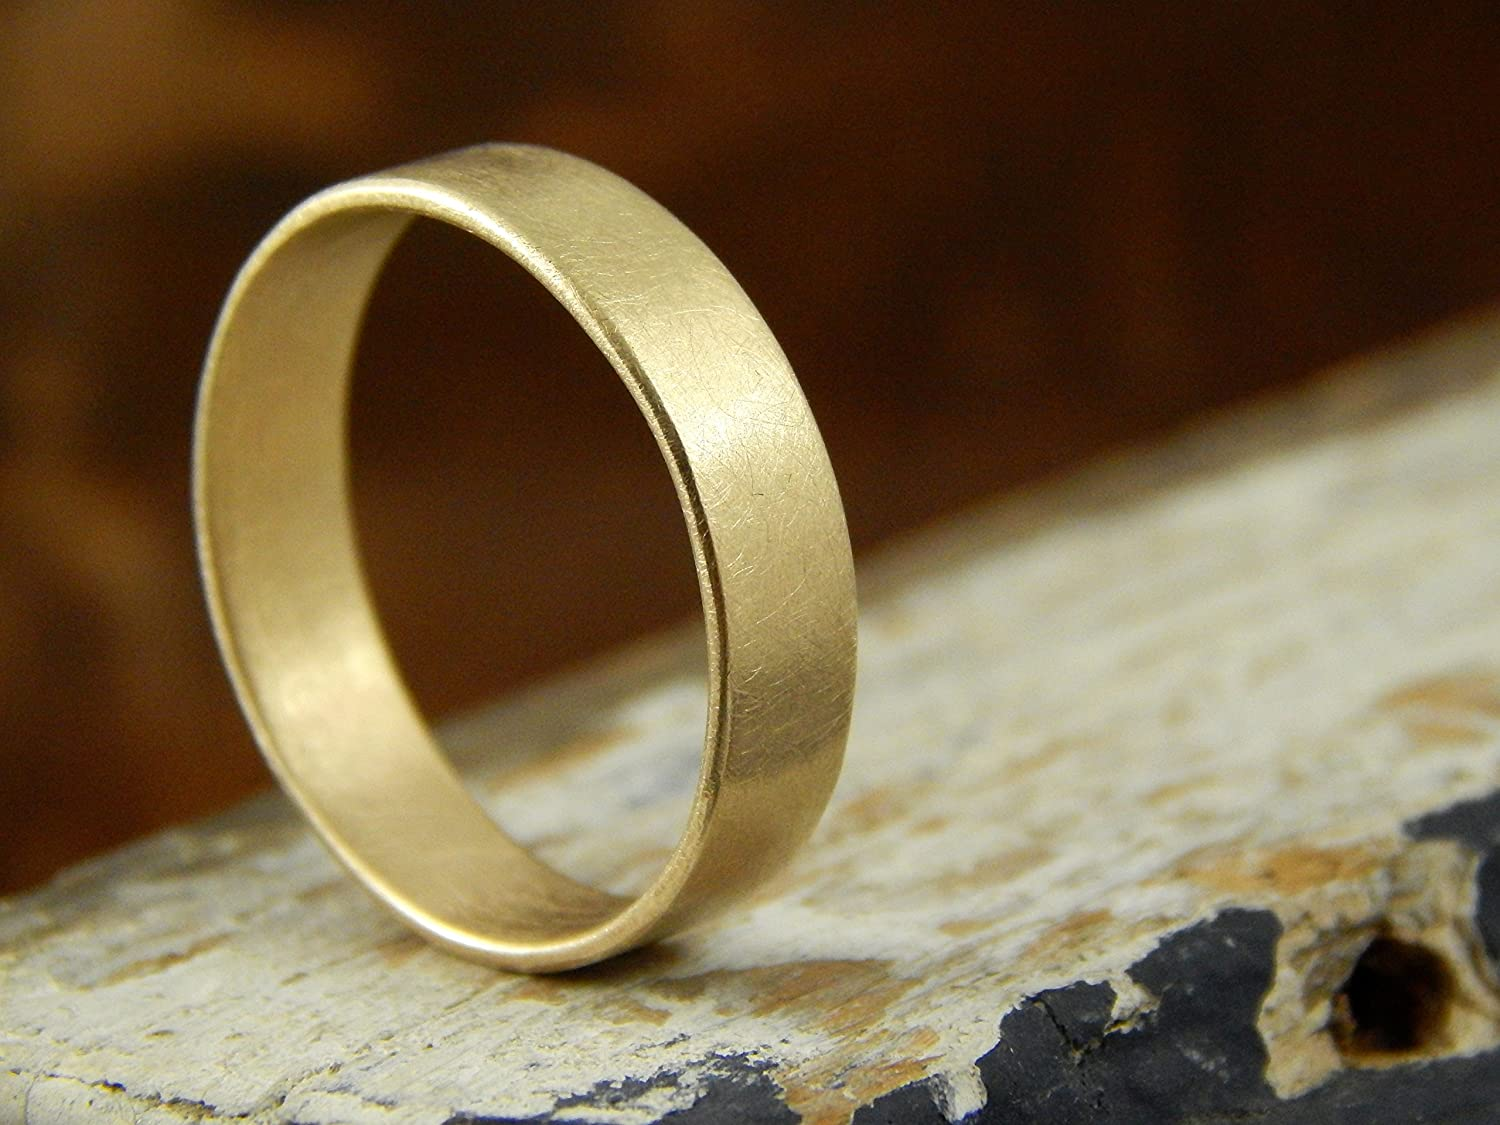 This is a photo of Amazon.com: 42 mm gold wedding band, 42k solid yellow gold band